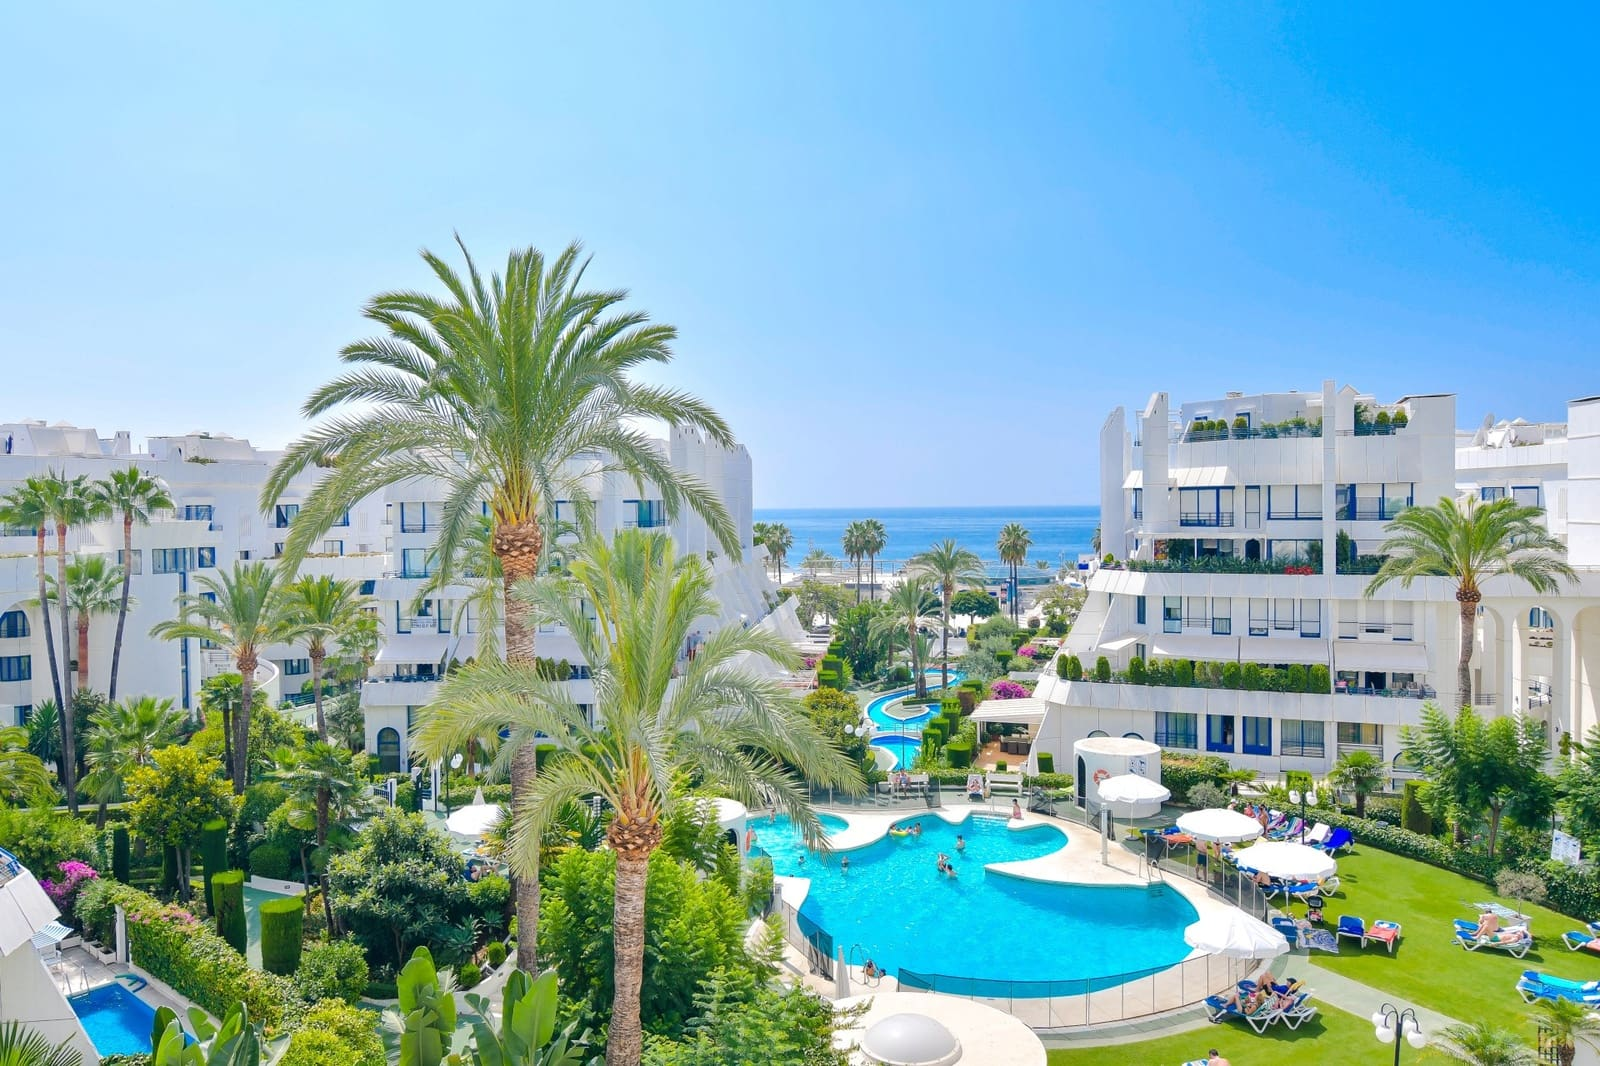 3 bedroom Apartment for sale in Marbella with pool garage - € 825,000 (Ref: 4542235)